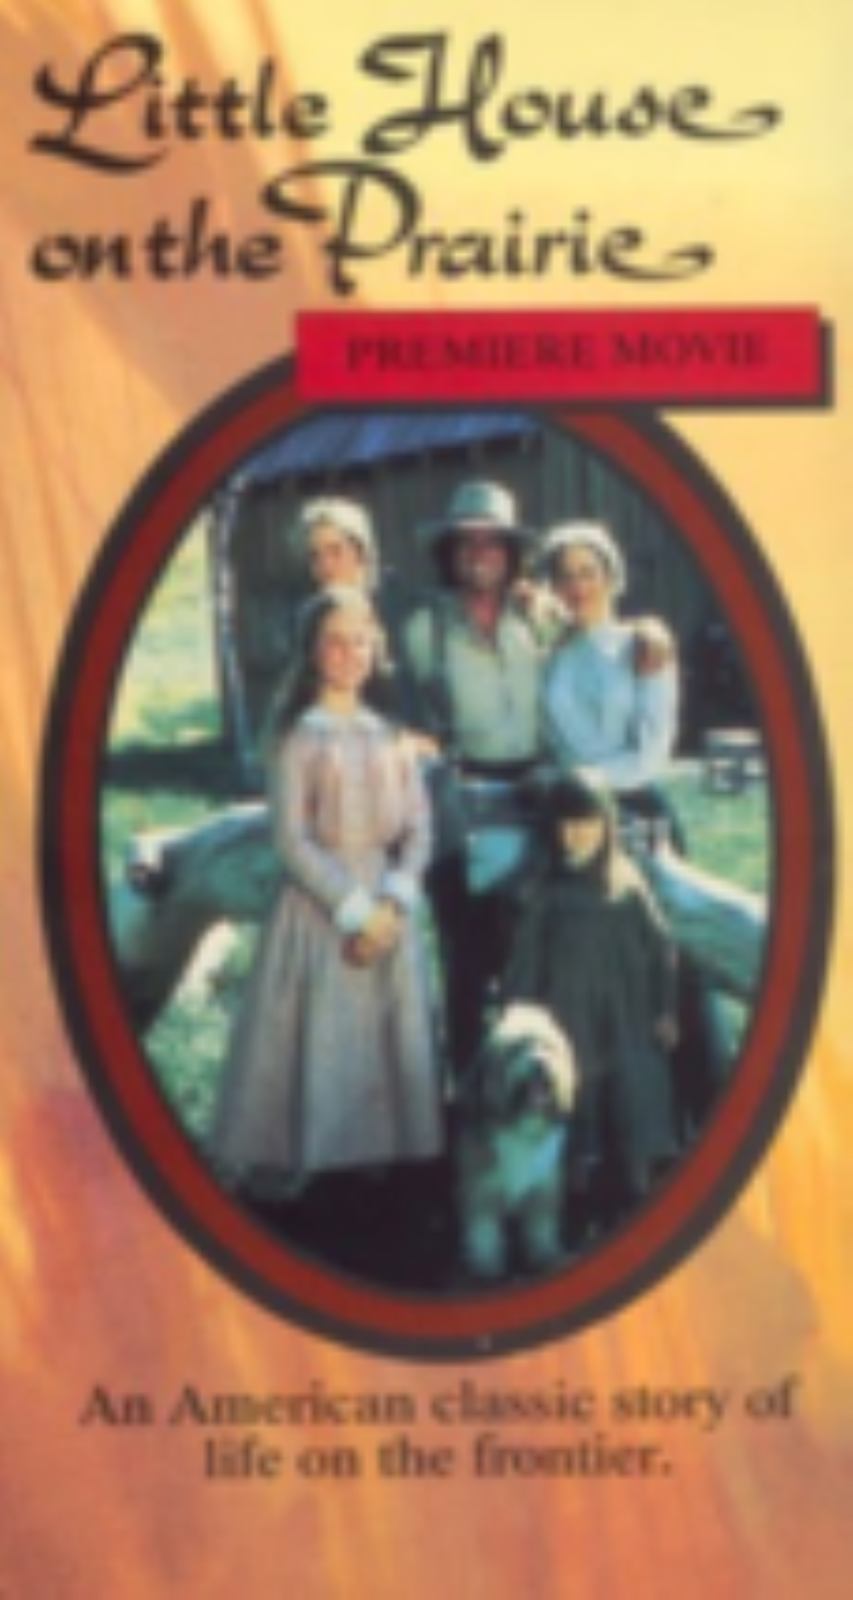 Little House on the Prairie:Premiere Vhs